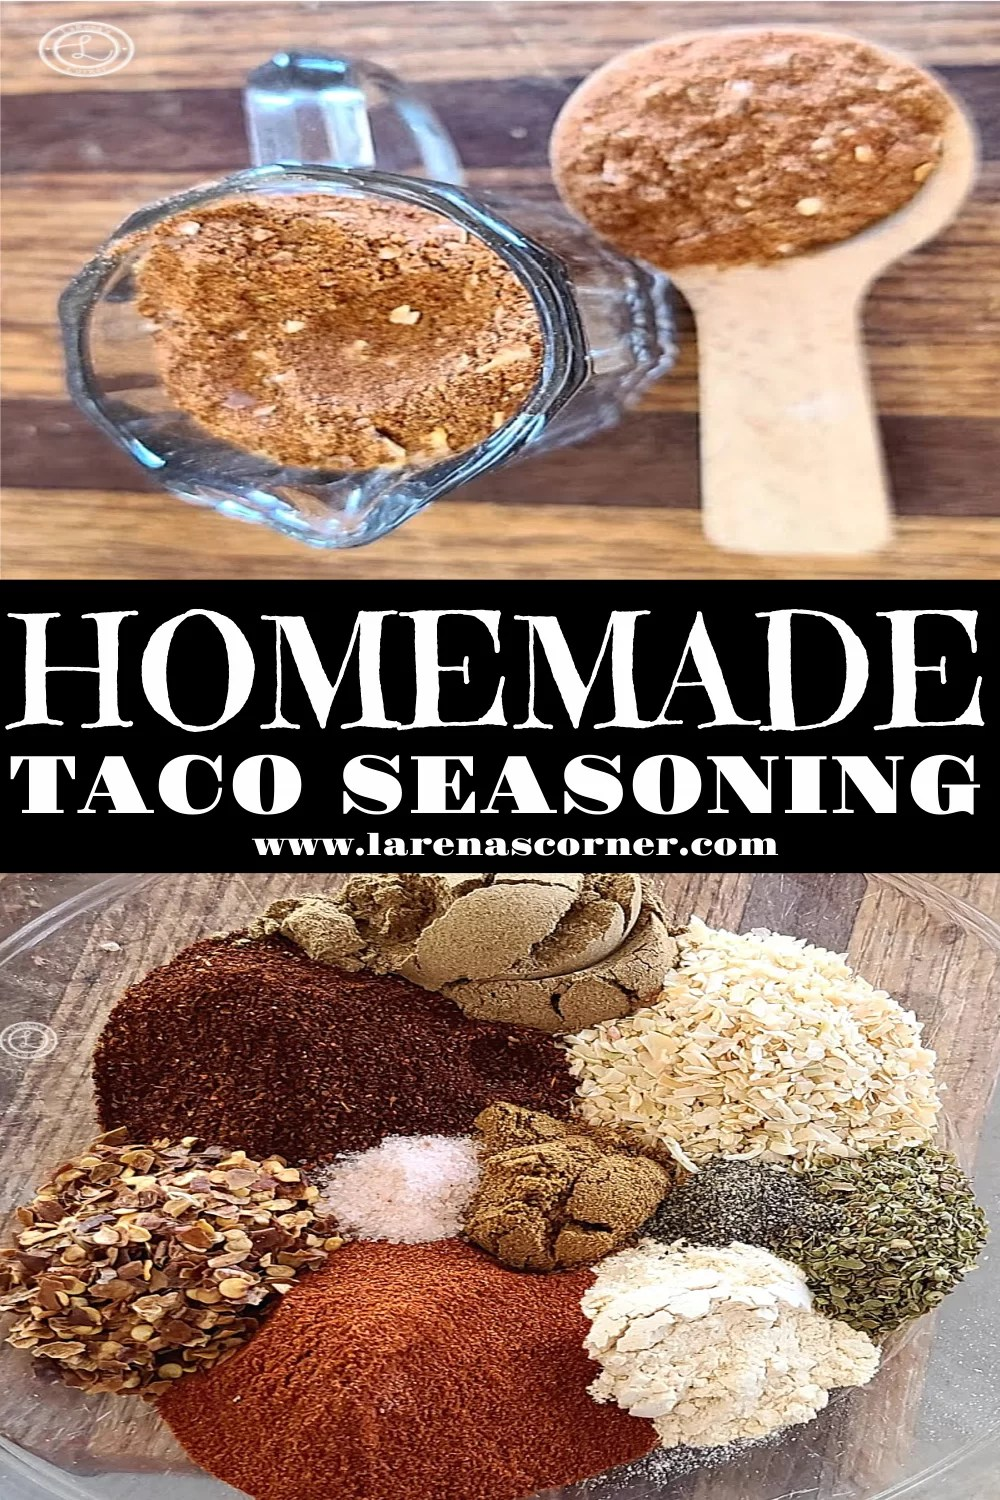 Homemade Taco Seasoning two different pictures. One of the individual spices and one of them blended together.